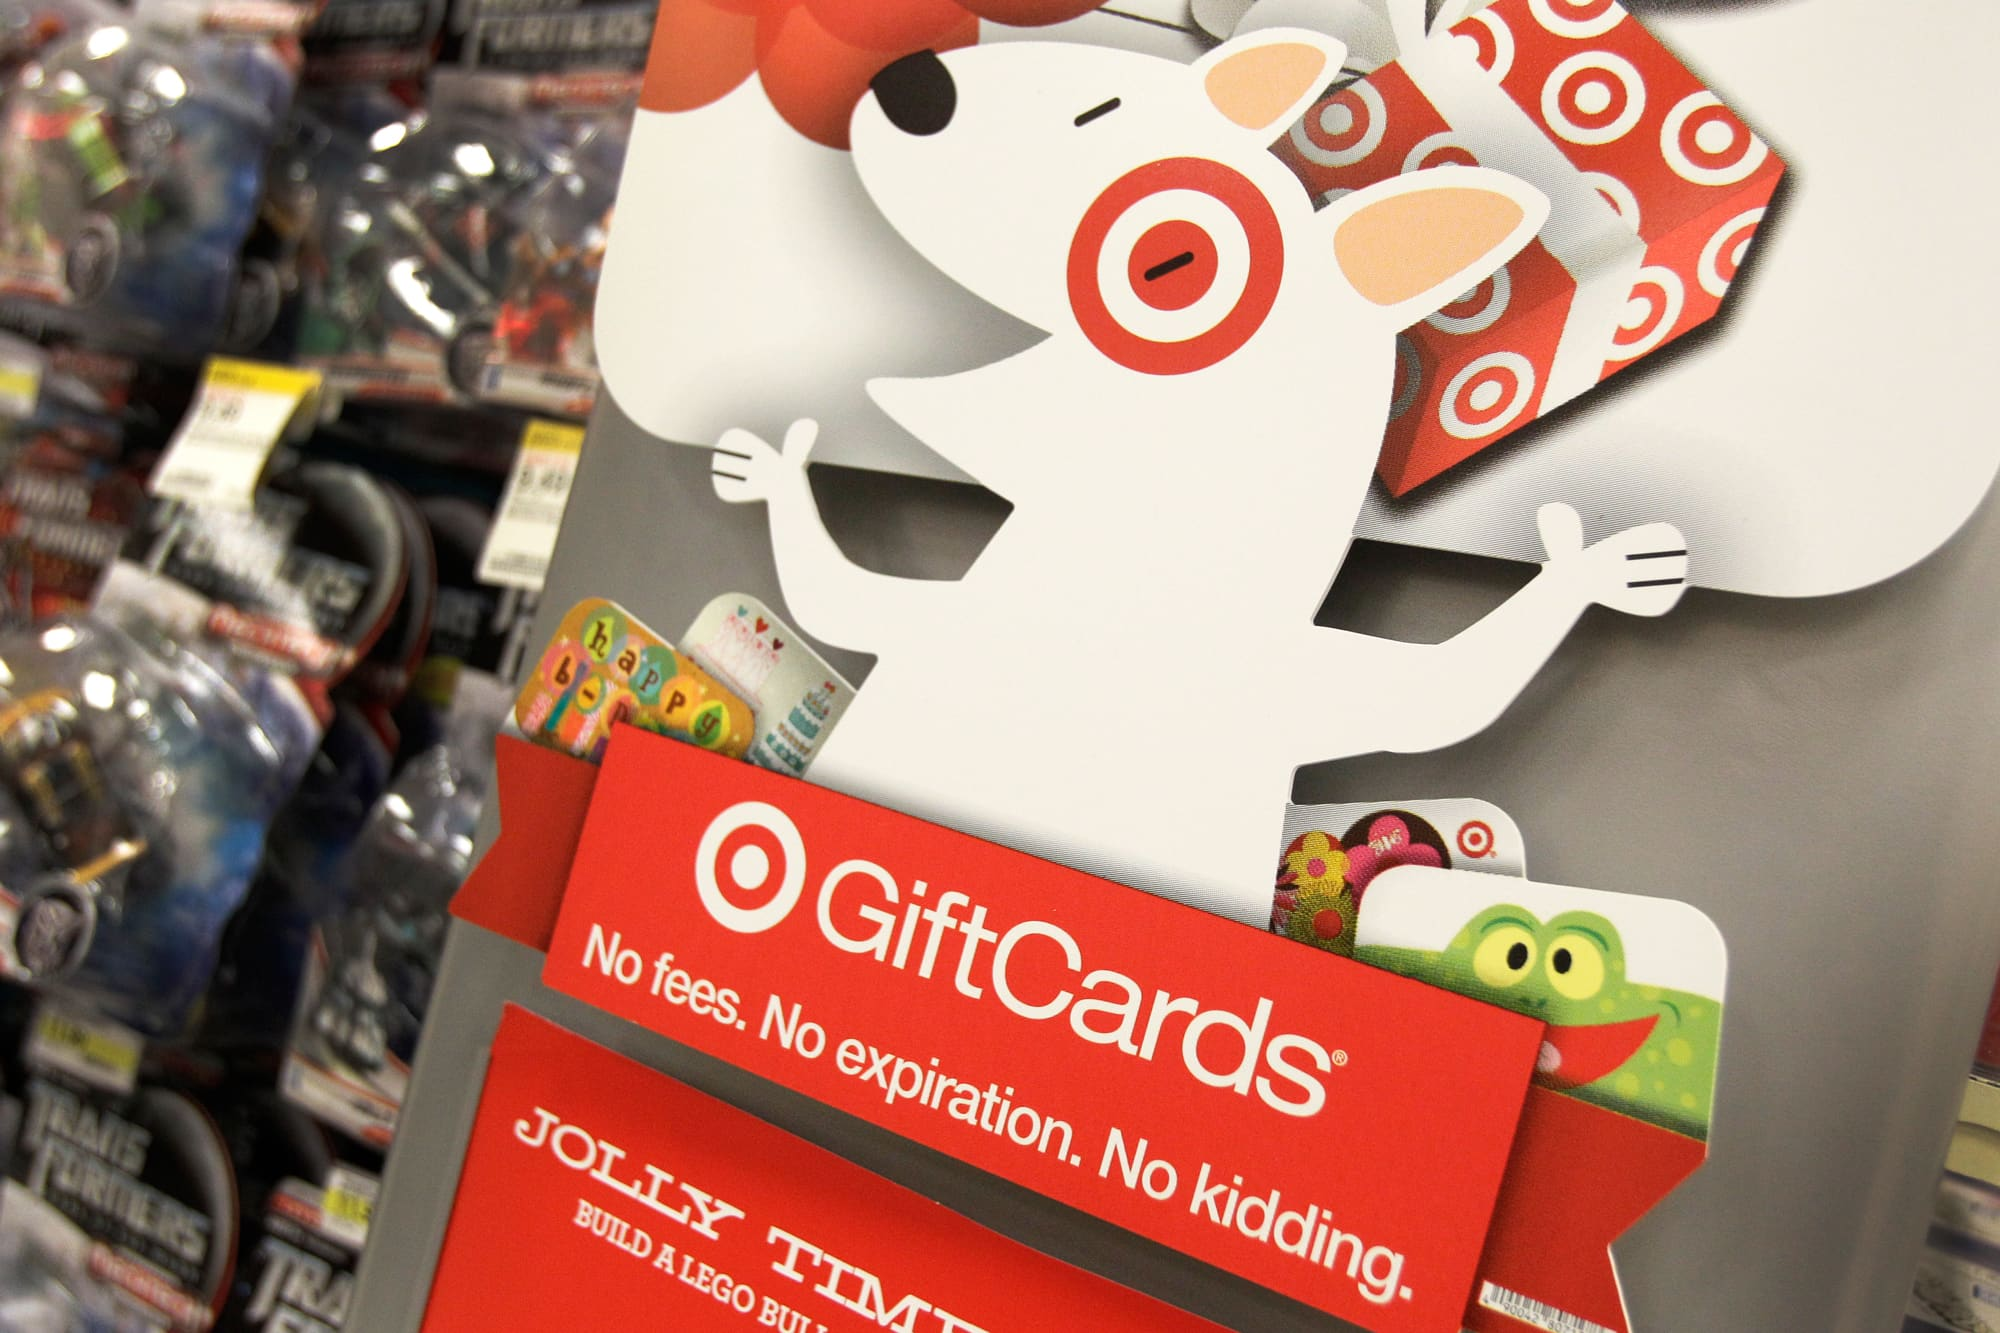 Some Target holiday gift cards were not activated